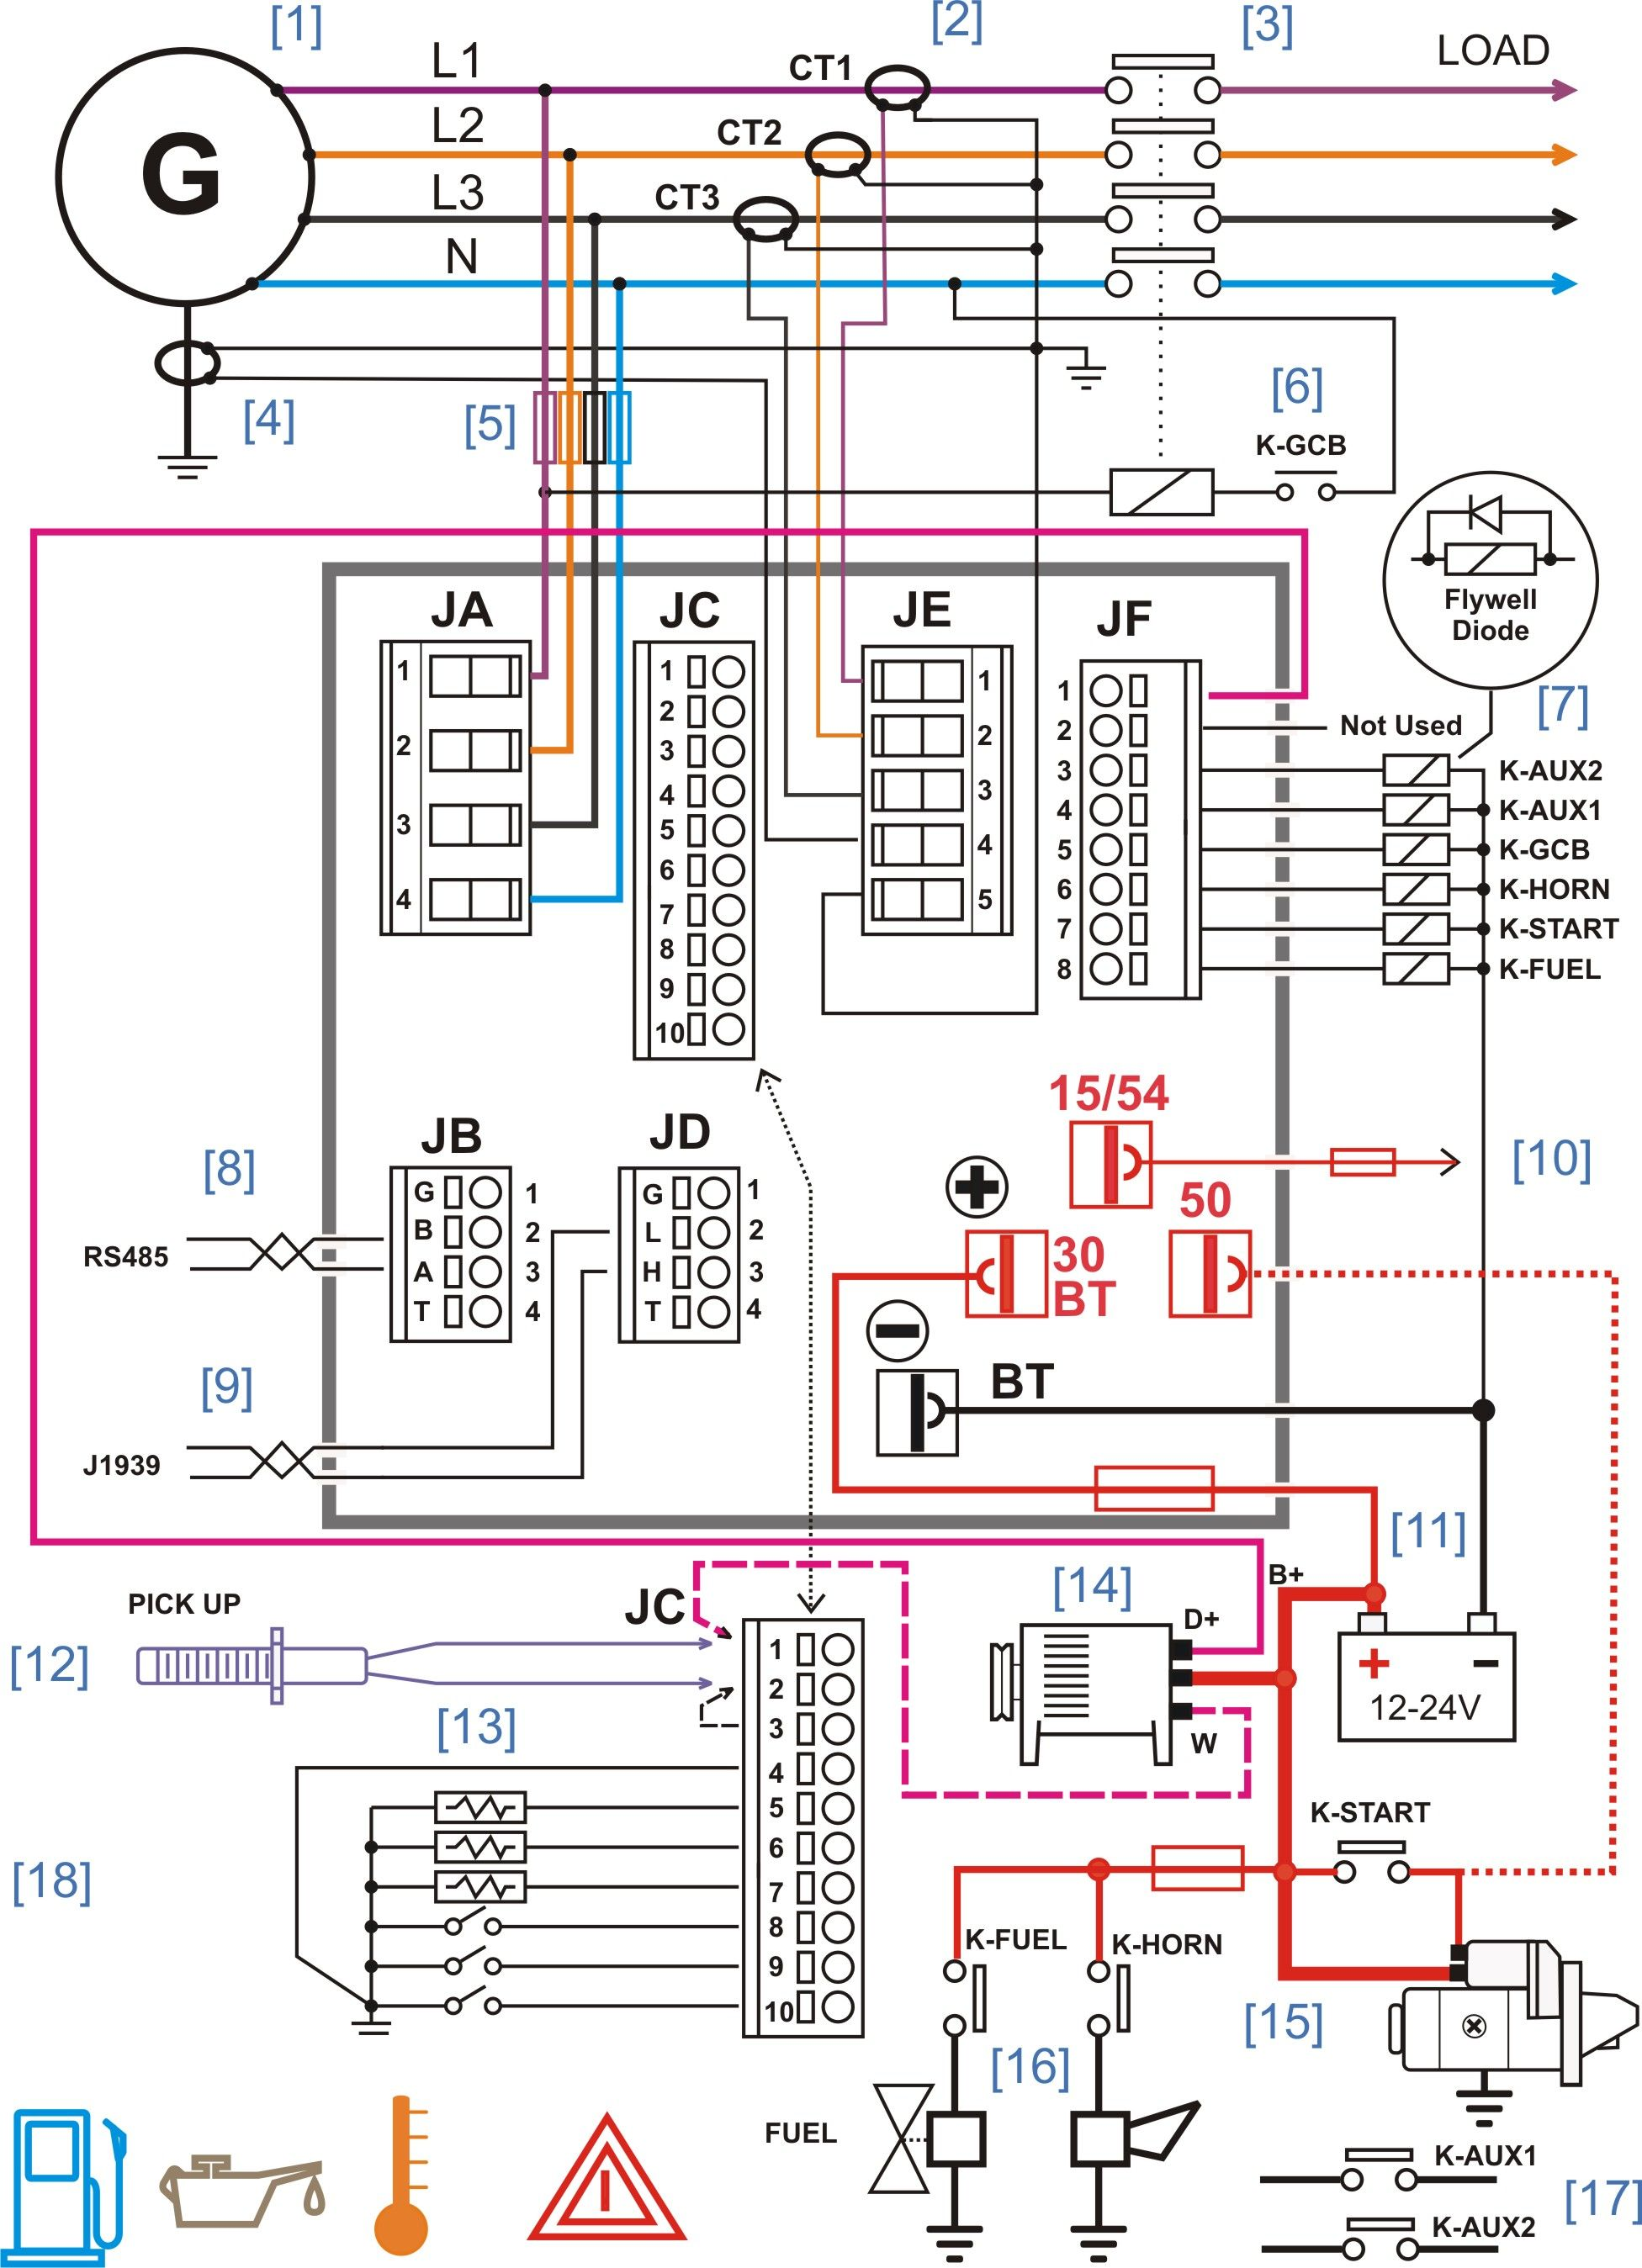 Wiring Diagram For Fastway Tongue Jack